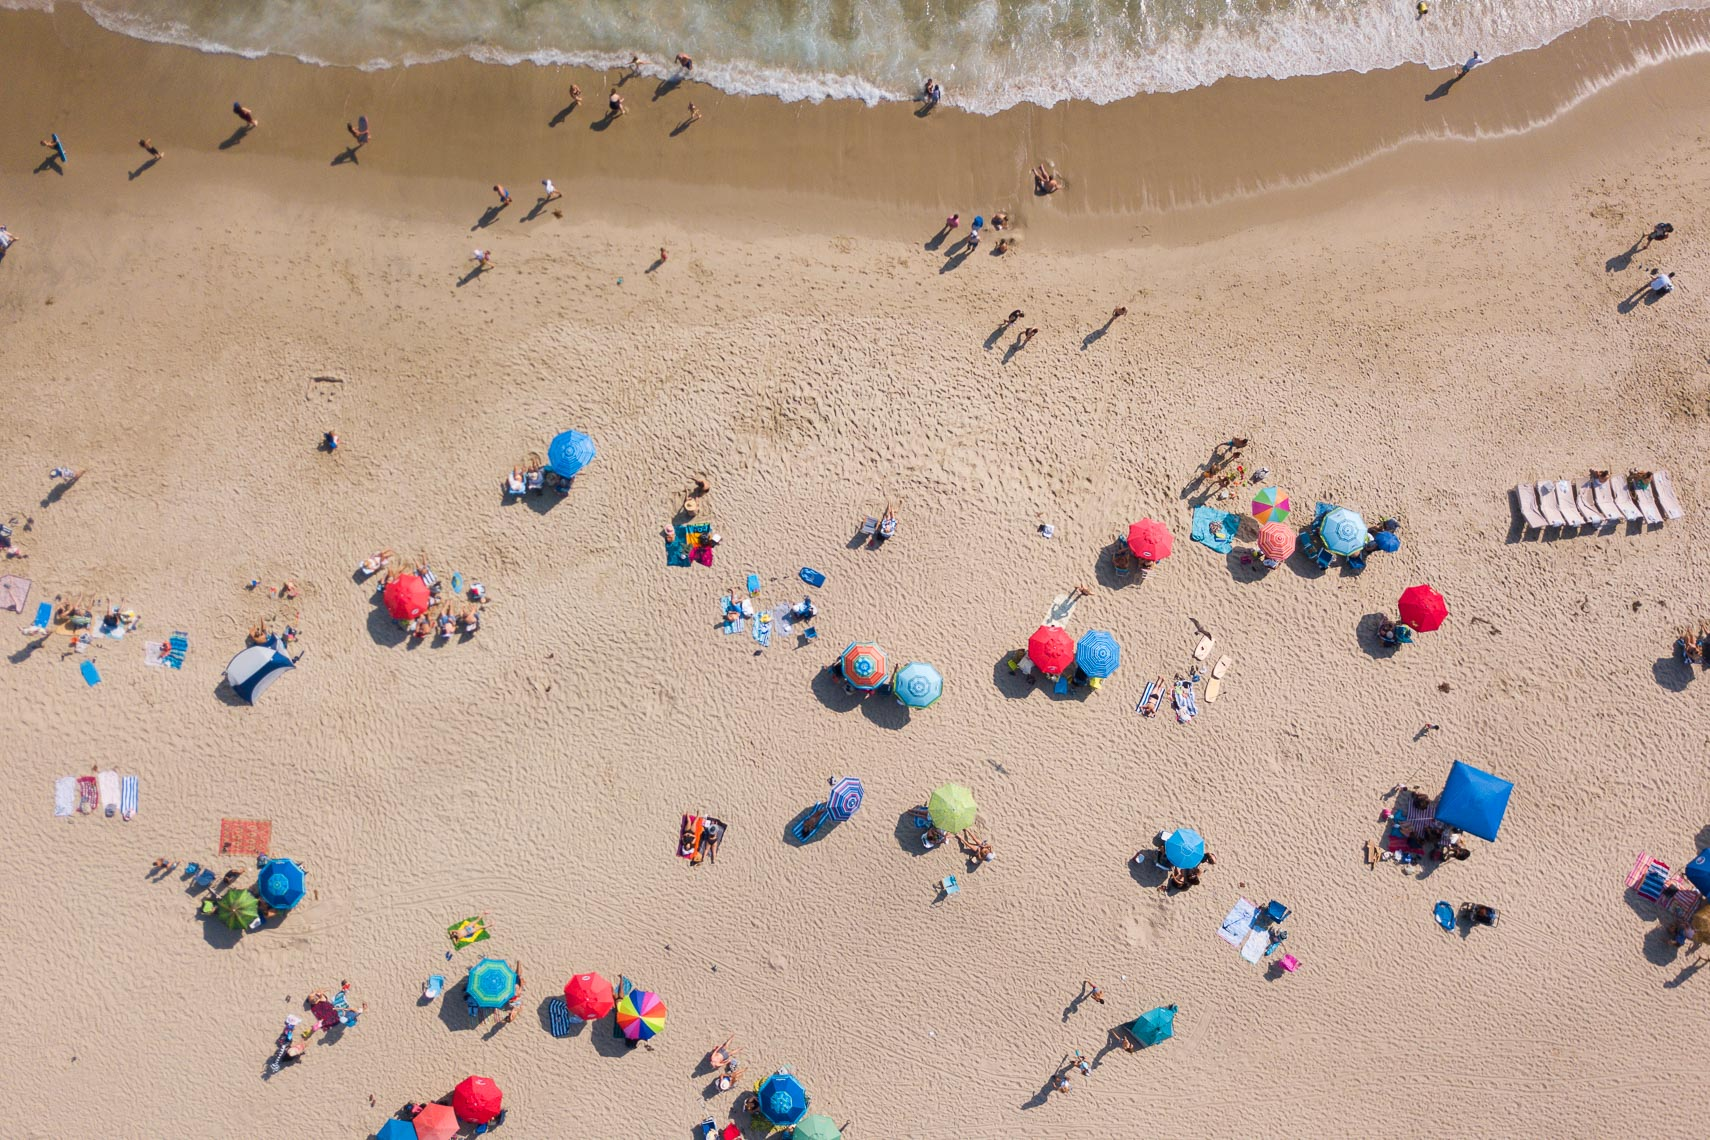 Beach Umbrellas Drone